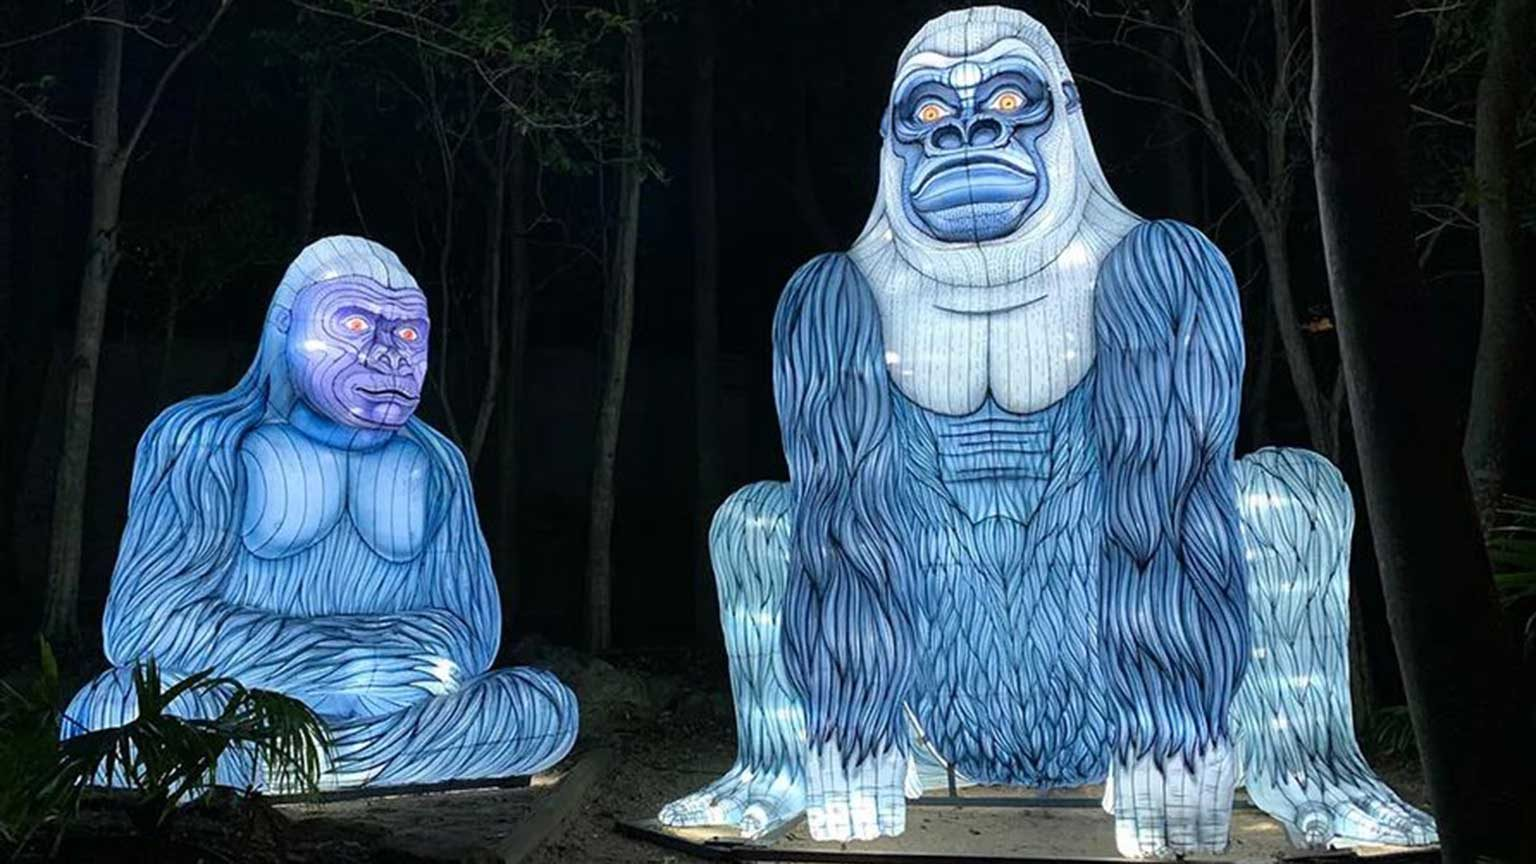 Gorillas at Vivid Sydney, Taronga Zoo.